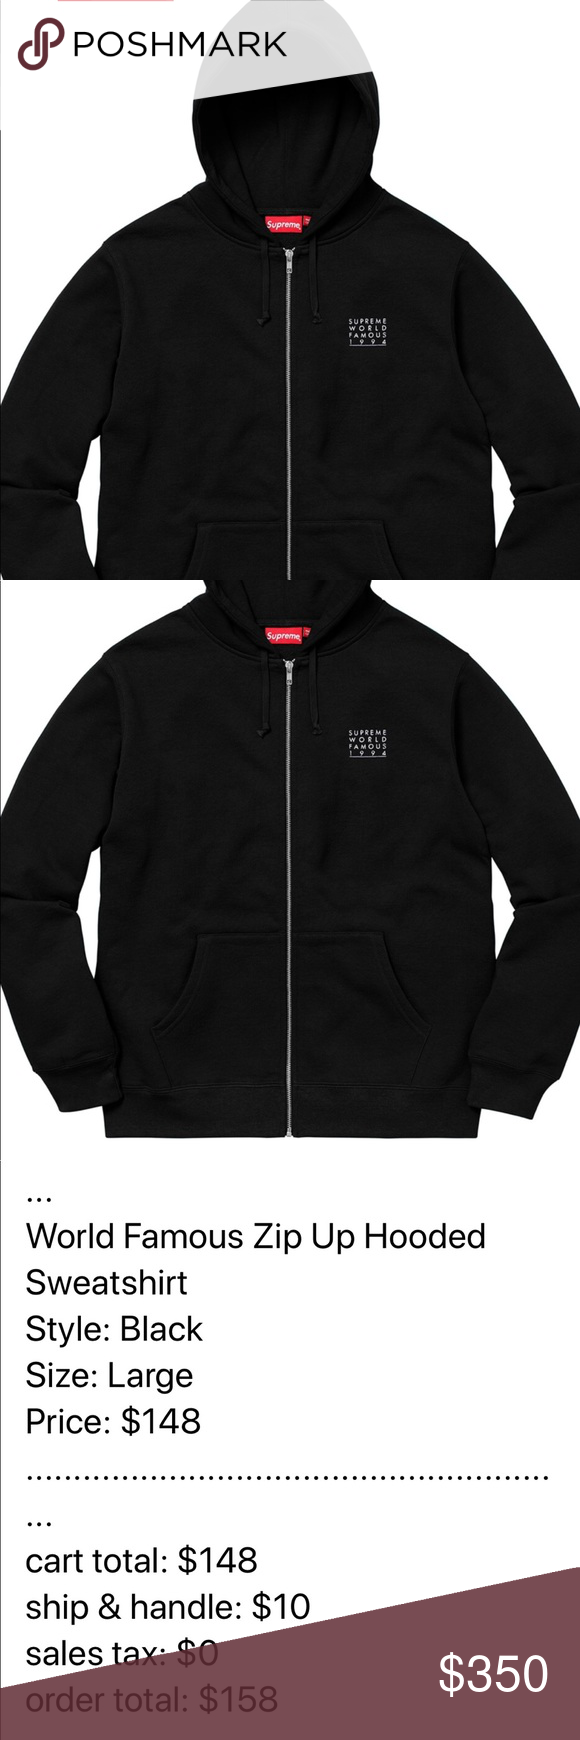 Supreme World Famous Zip Hoodie Black Hoodie Men S Large Will Include The Bag And Stickers If They R Supreme Sweater Black Supreme Hoodie Sweatshirt Fashion [ 1740 x 580 Pixel ]